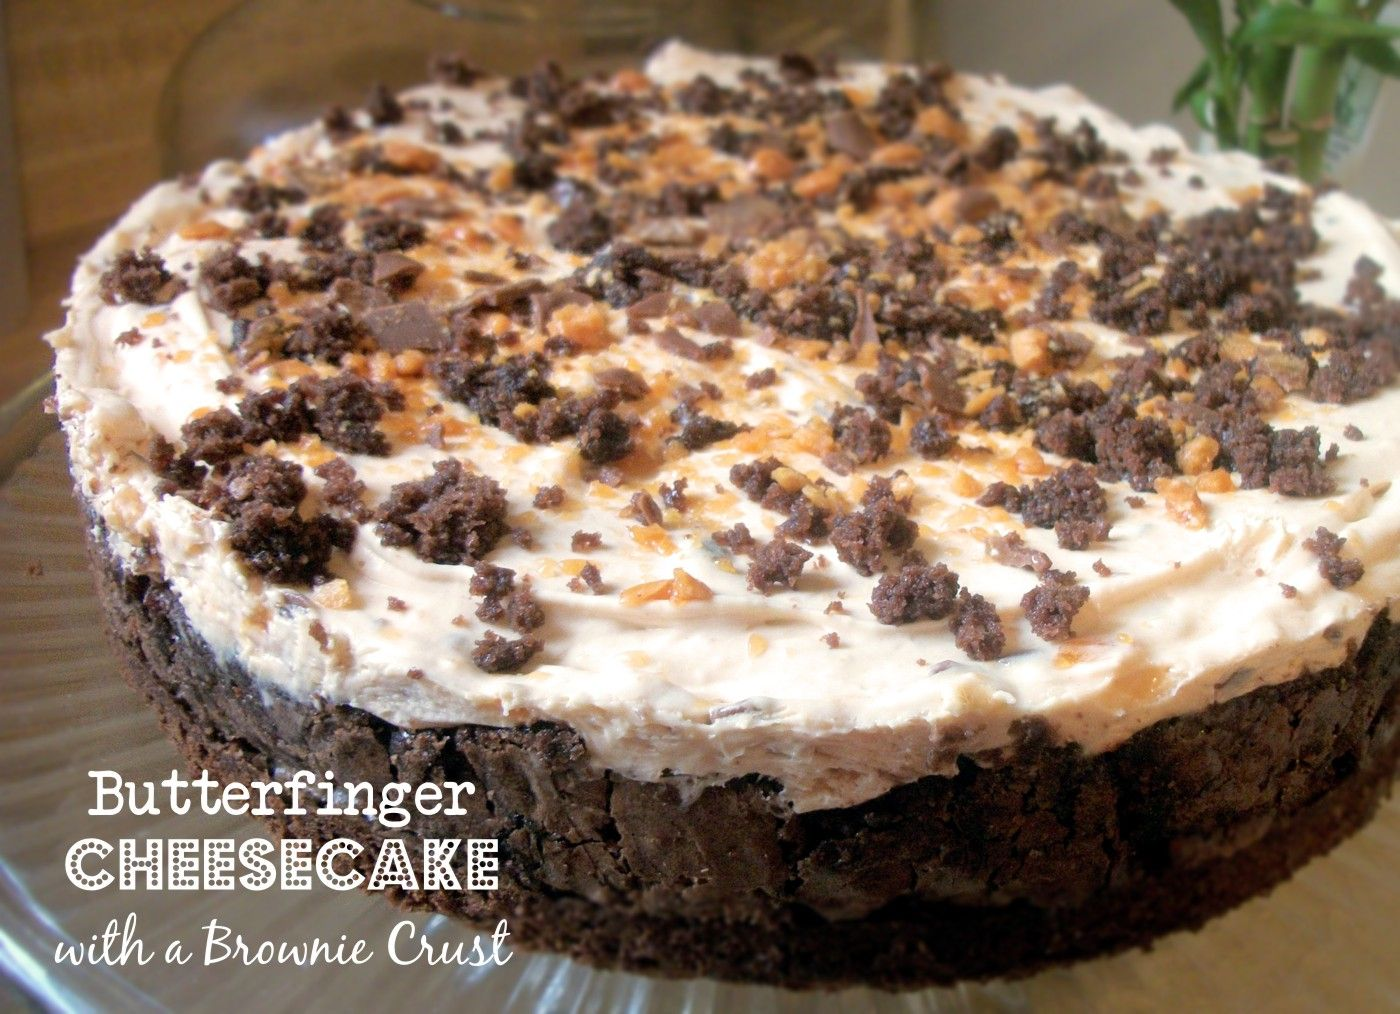 Brownie Crusted Butterfinger Cheesecake